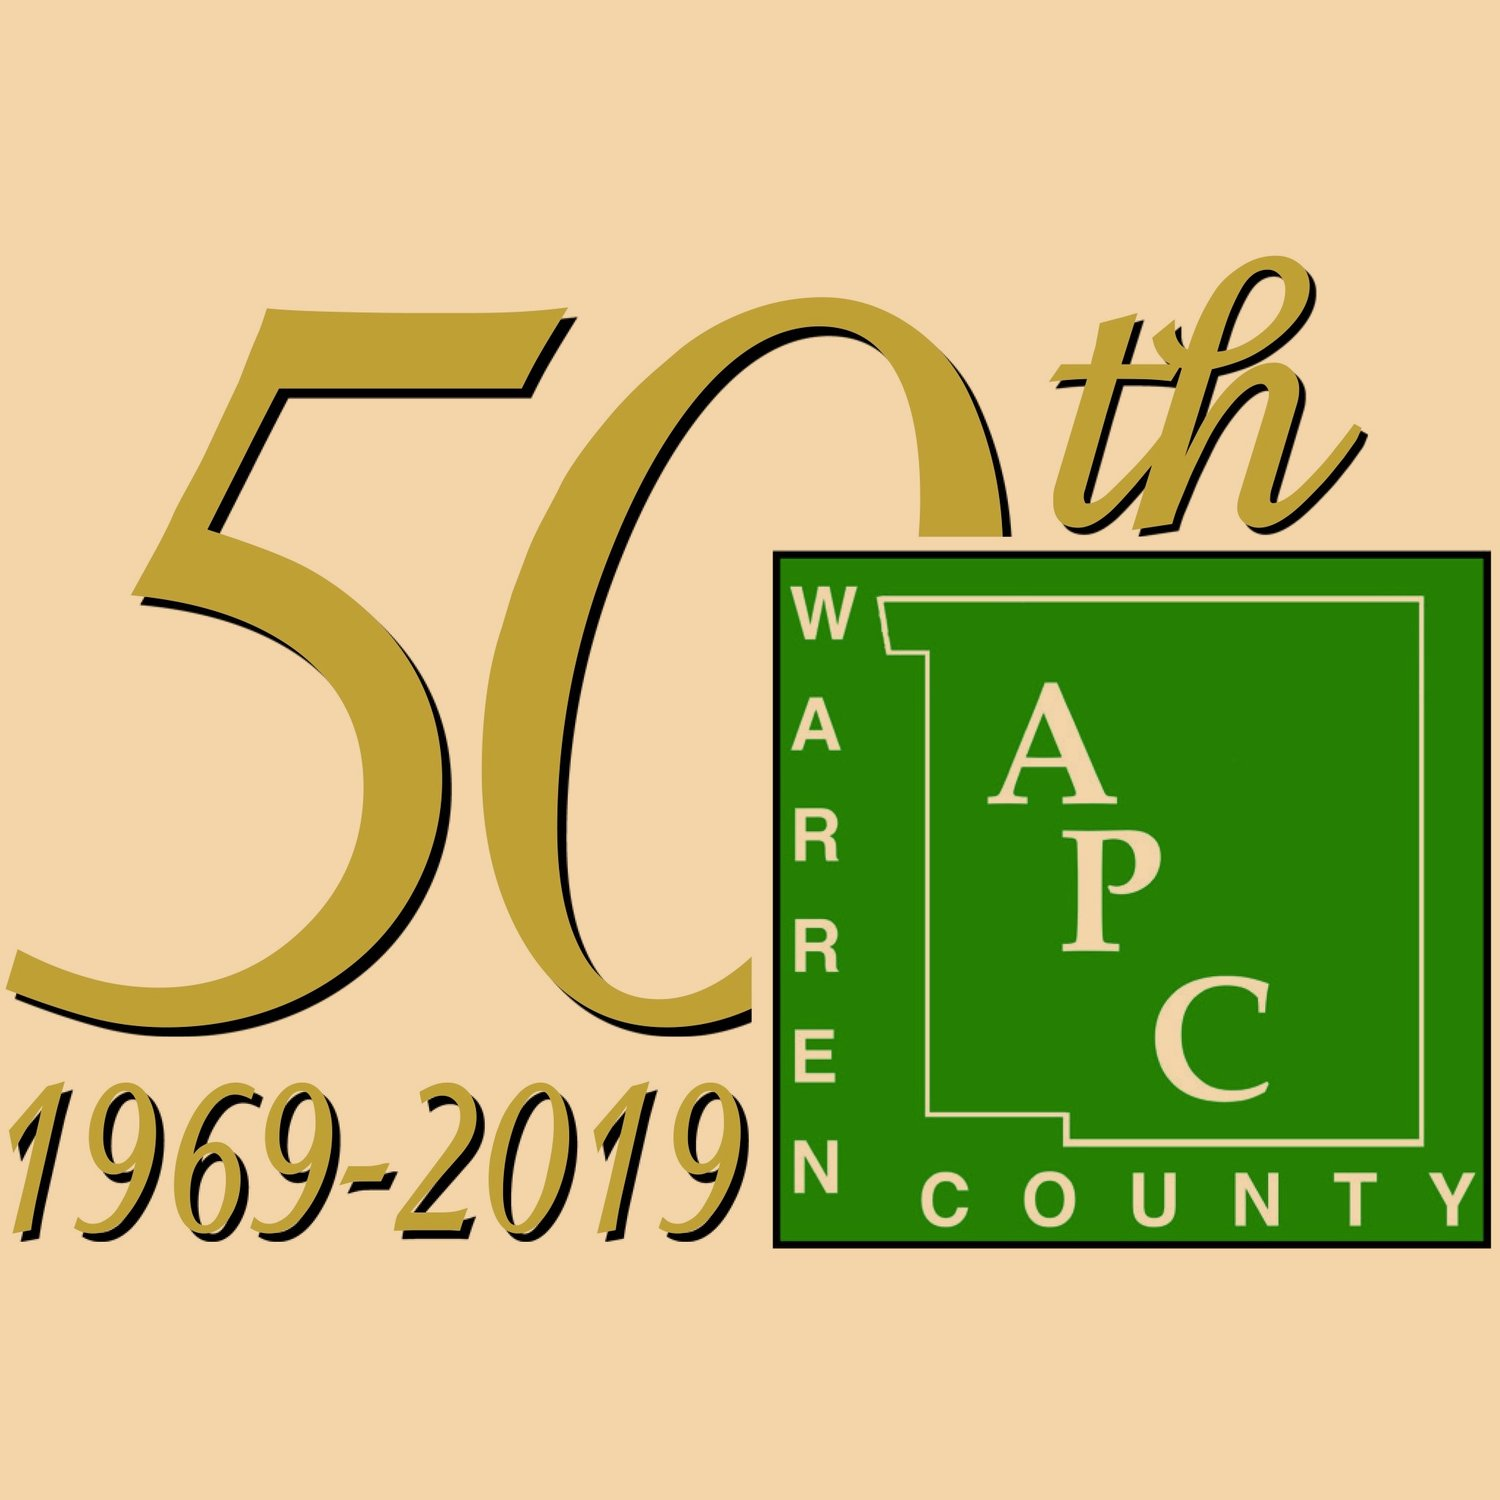 Area Progress Council Warren County